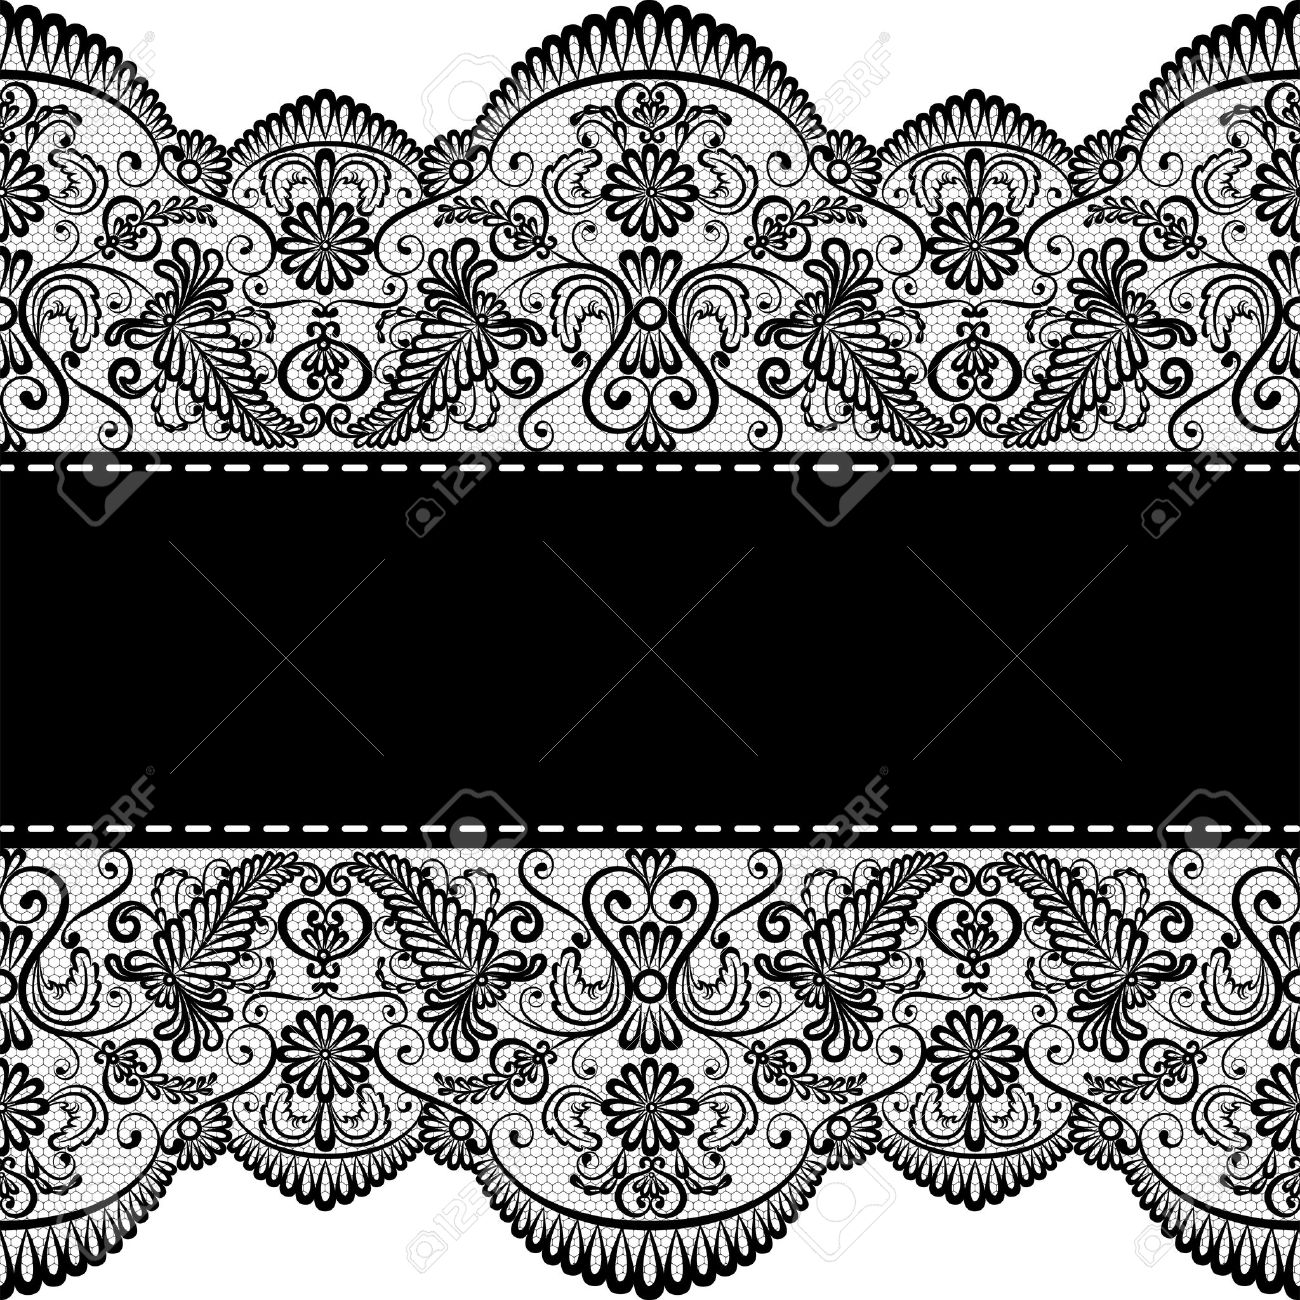 template for wedding invitation or greeting card with lace border